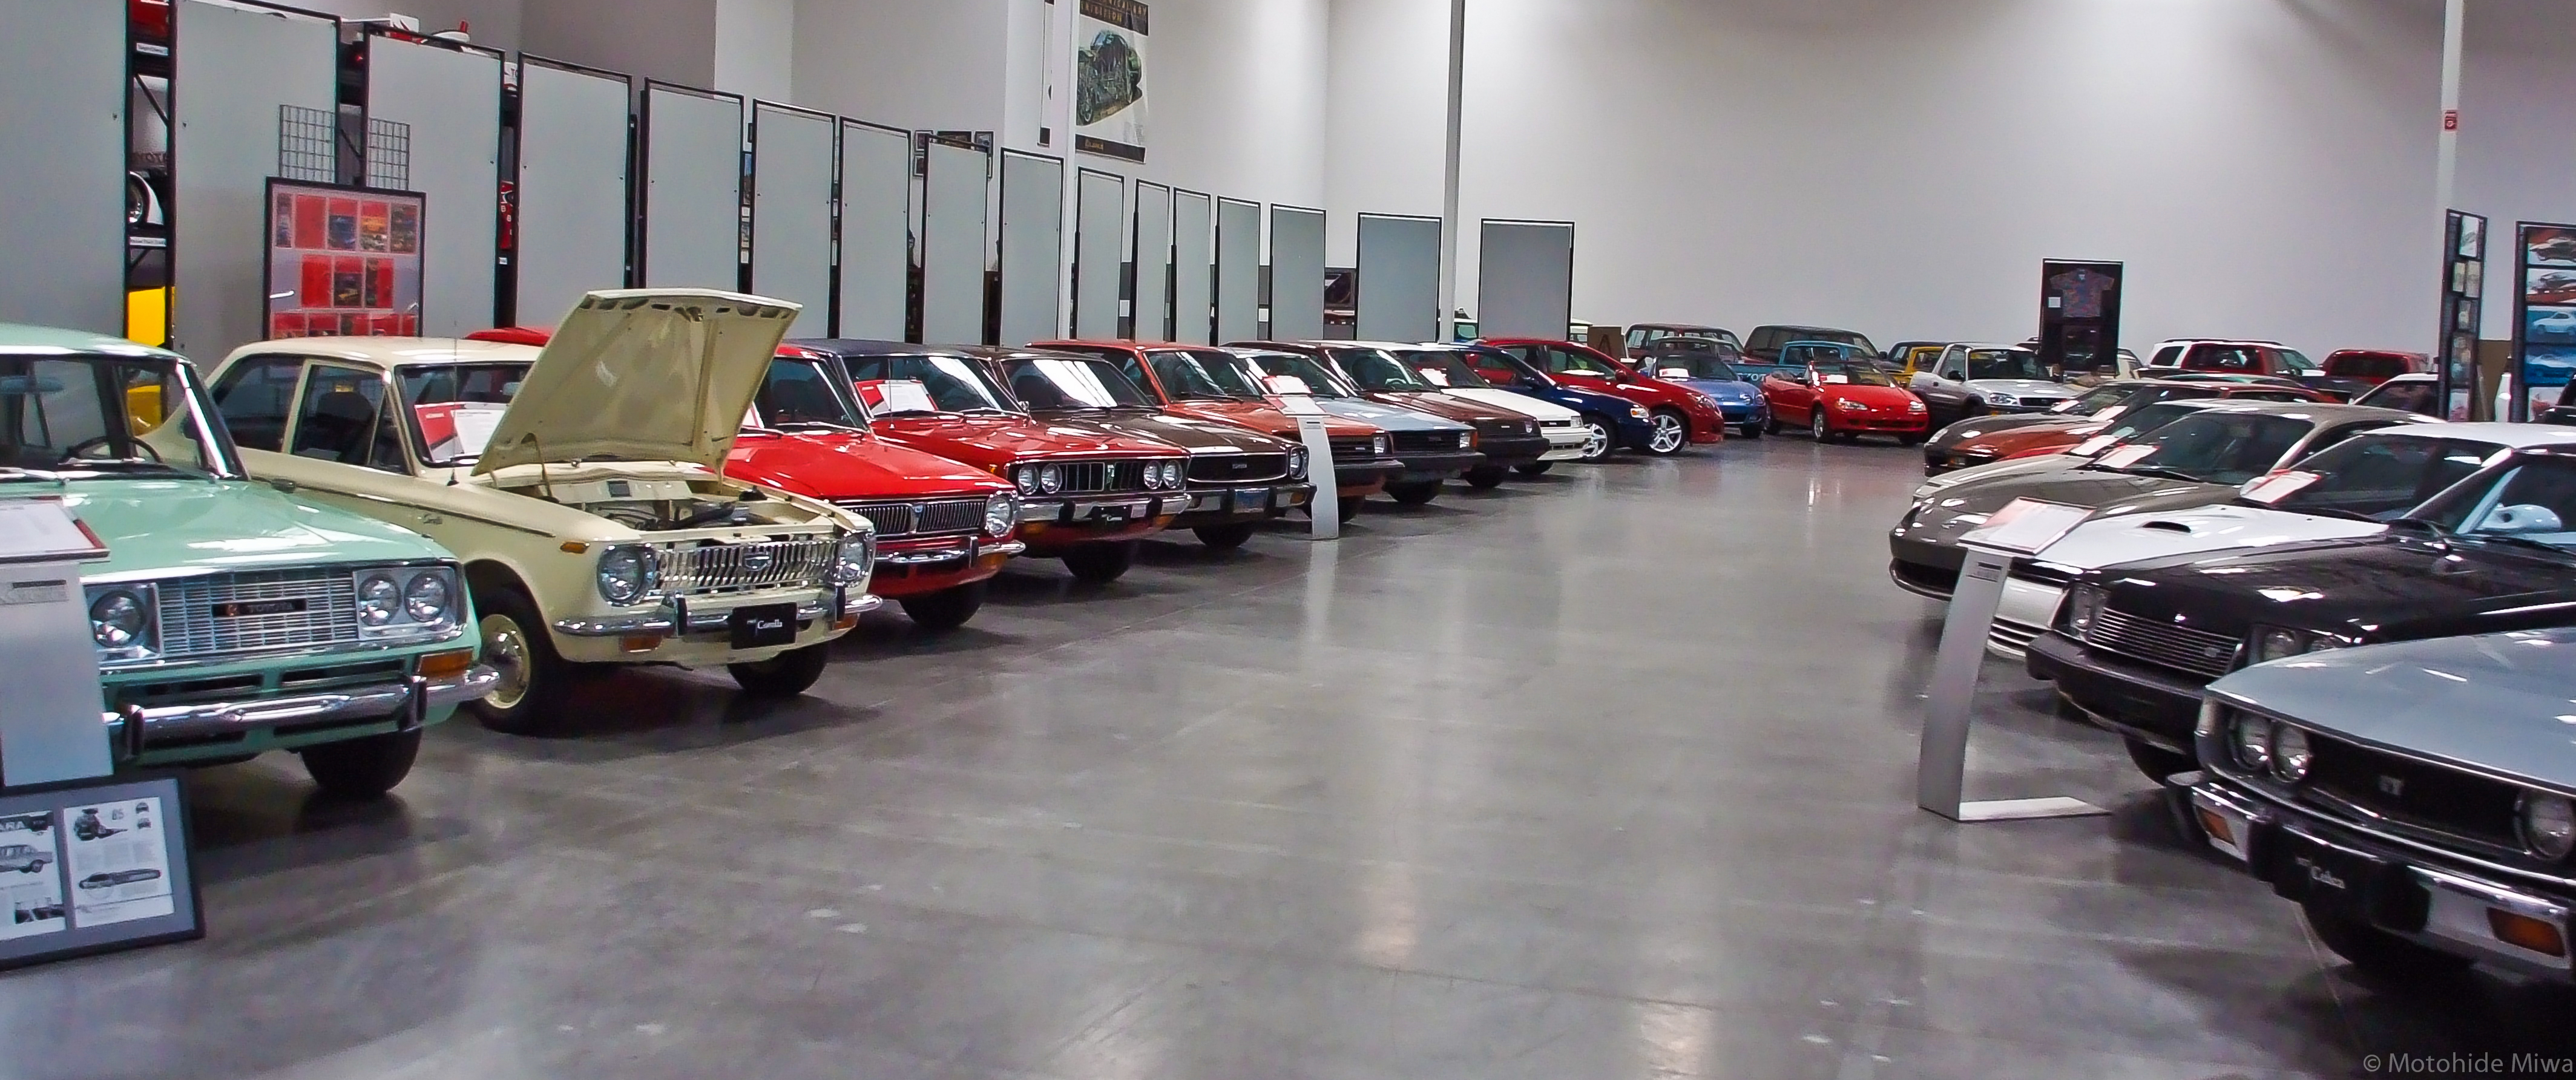 Toyota USA Automobile Museum Wikiwand - Historical museums in usa